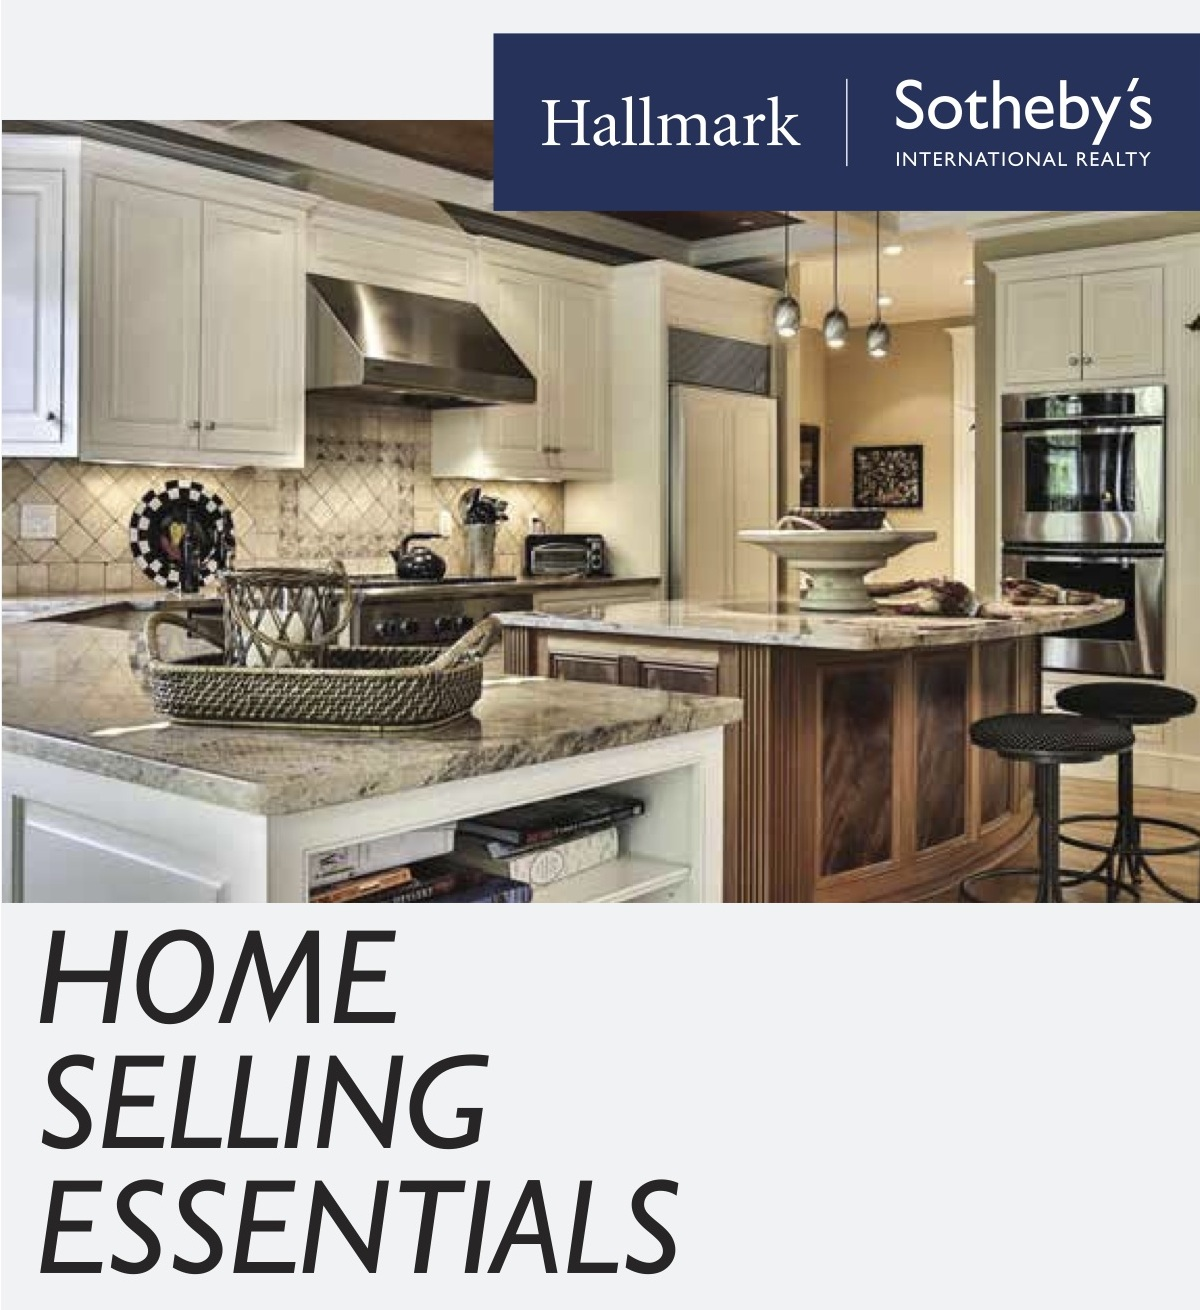 Home selling essential